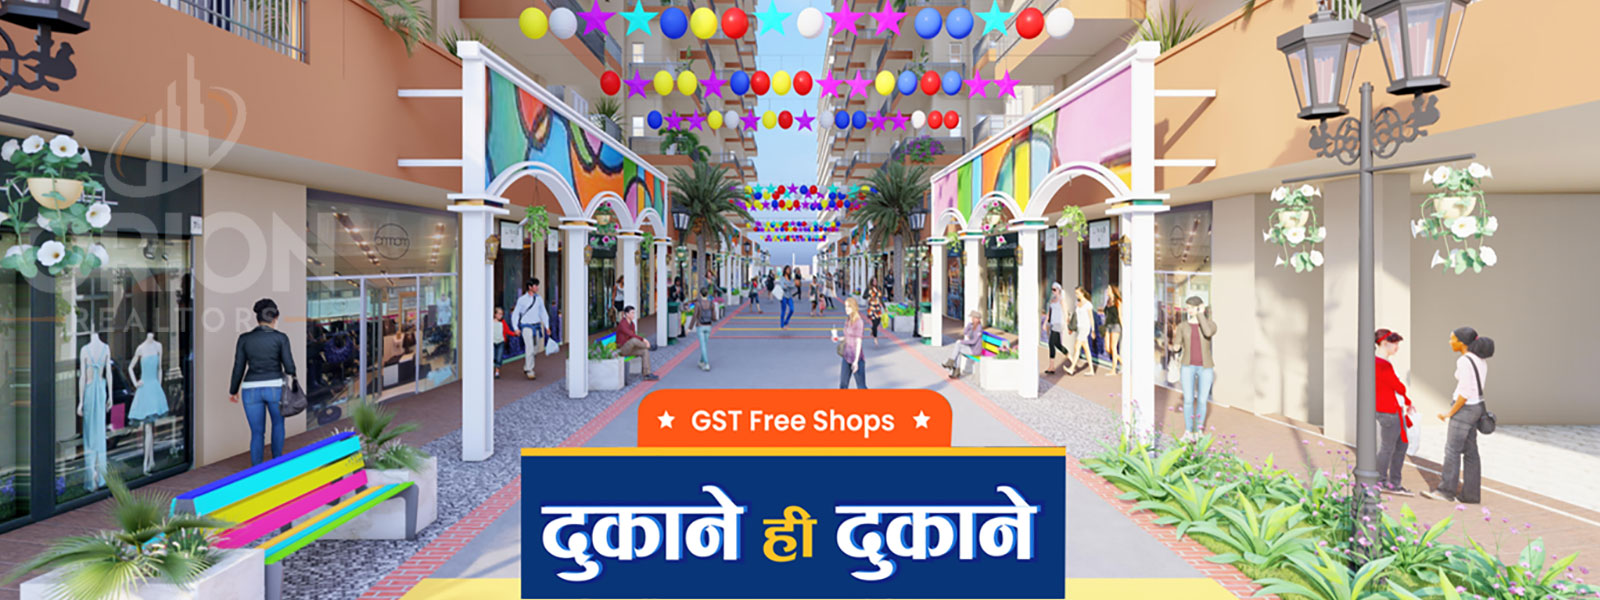 Hcbs Society Shops Gurgaon